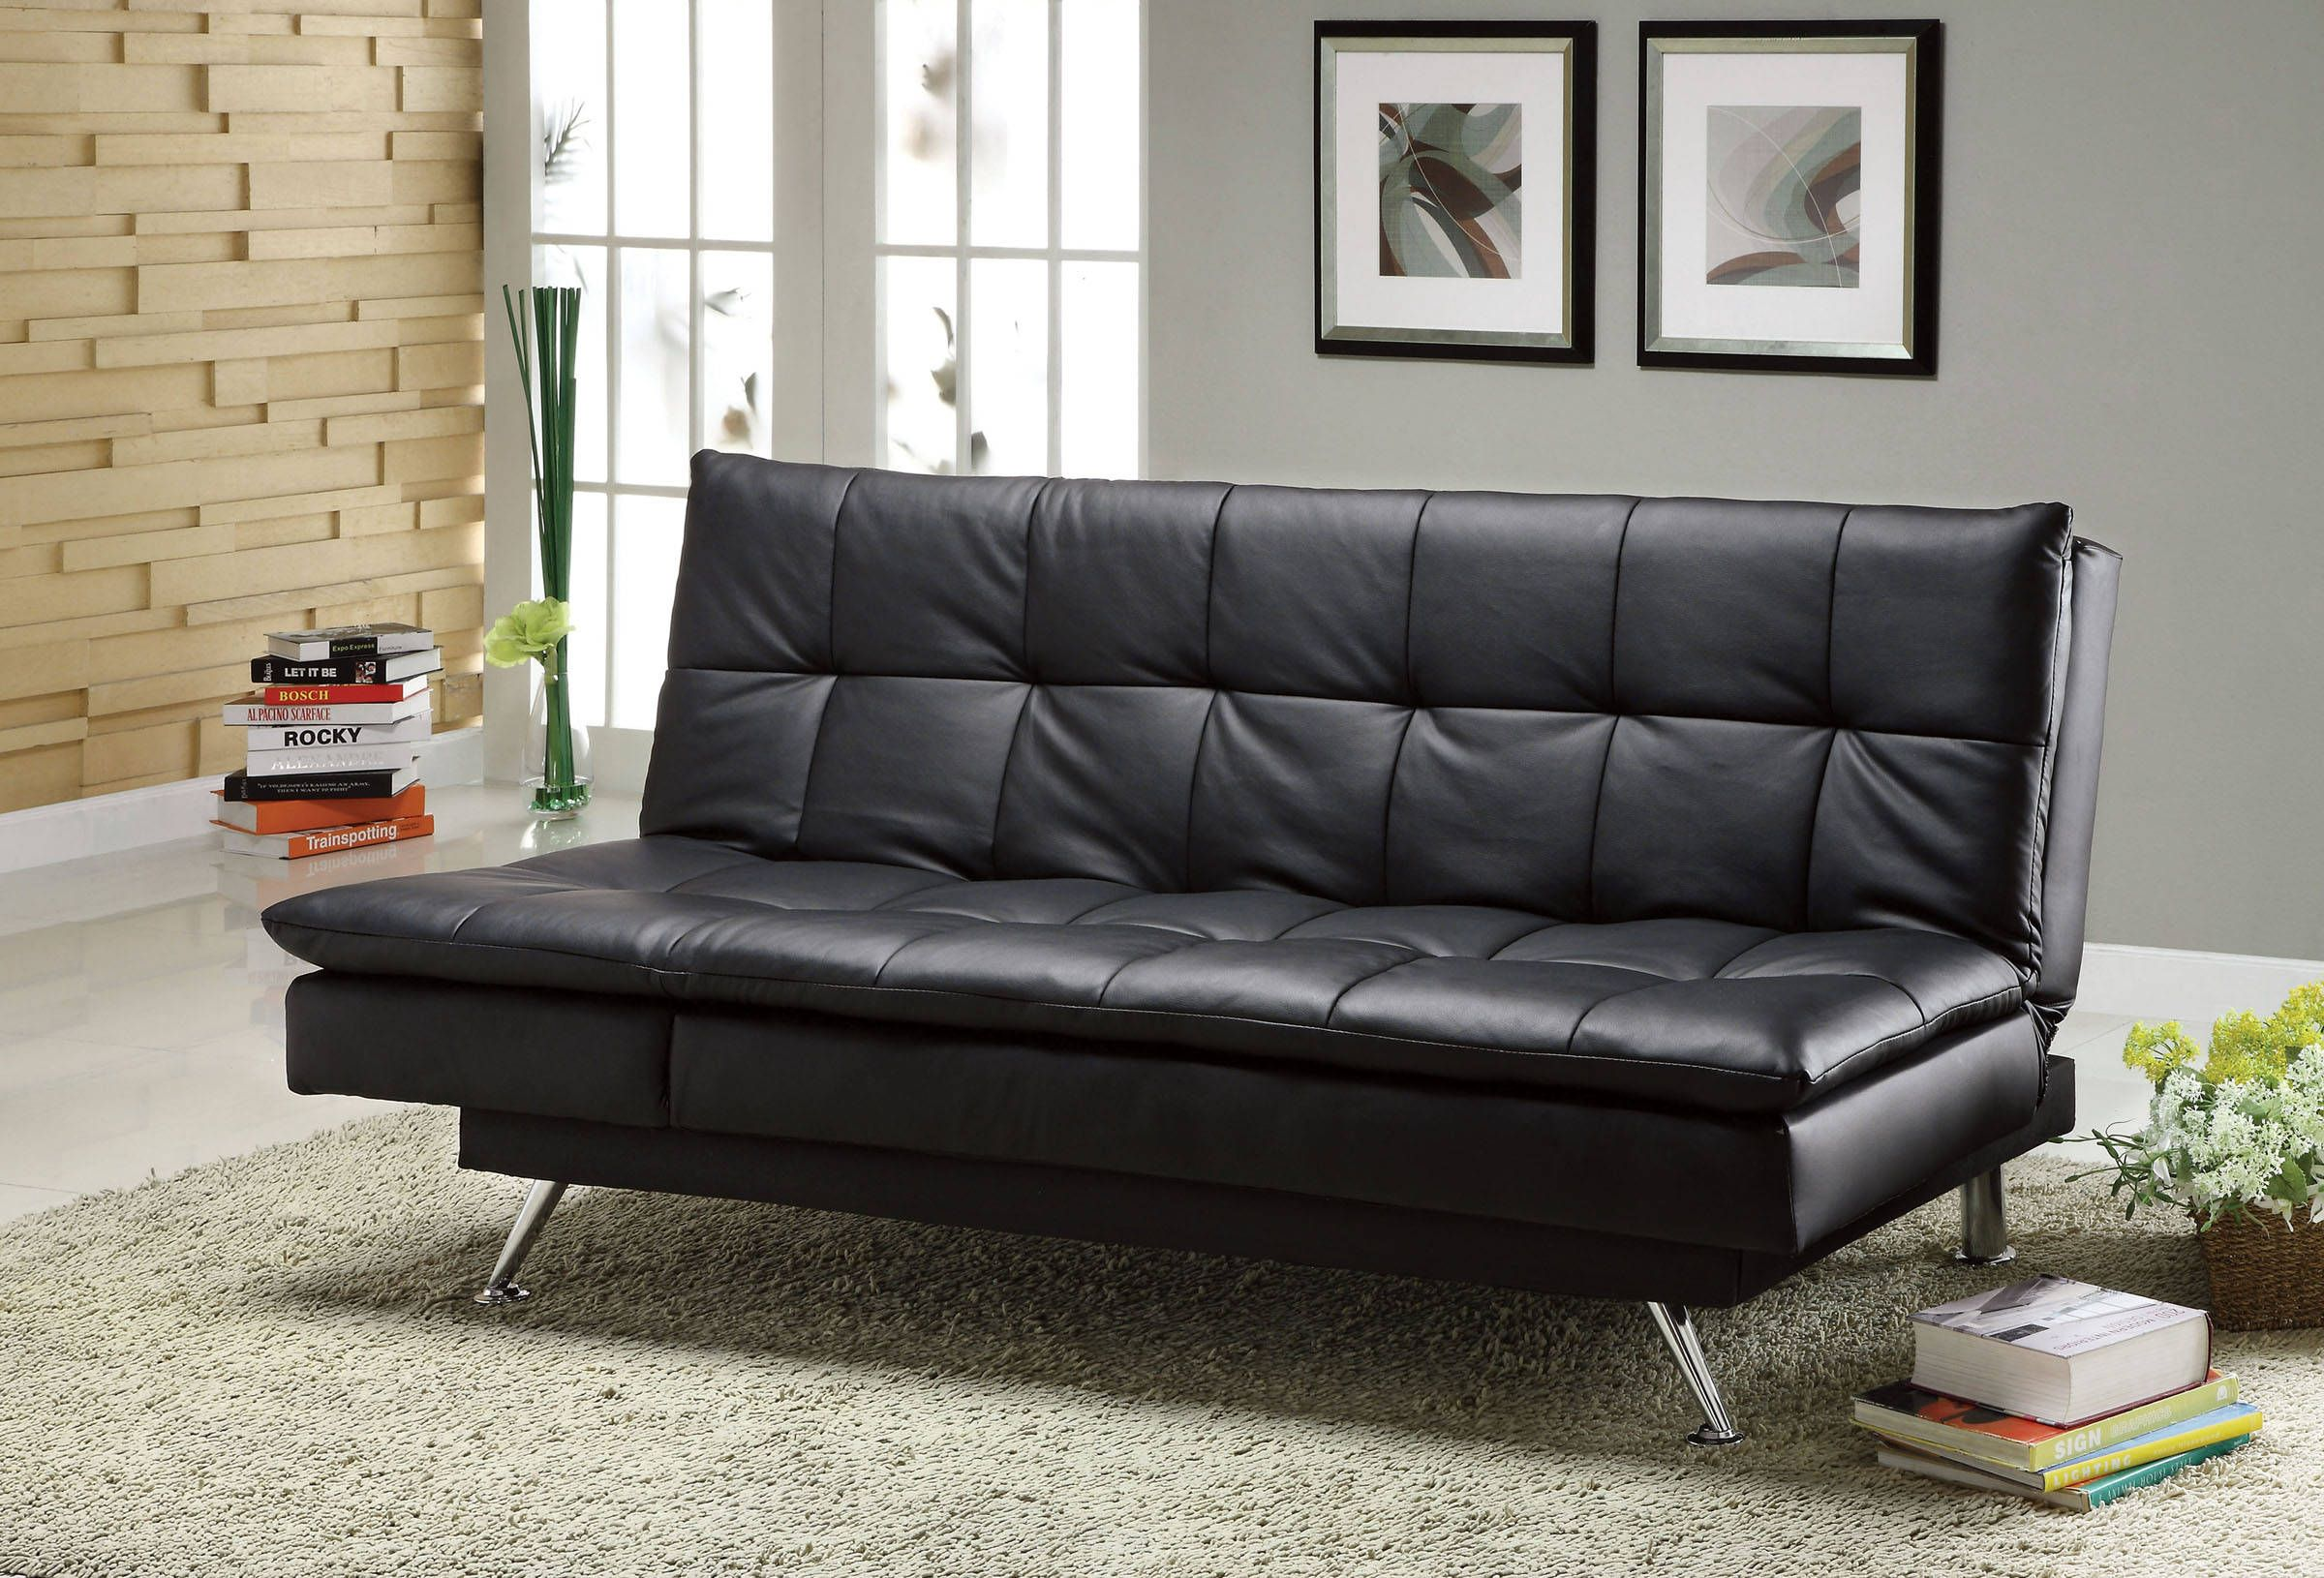 Hasty Contemporary Black Leatherette Futon Sofa | The Classy Home ...